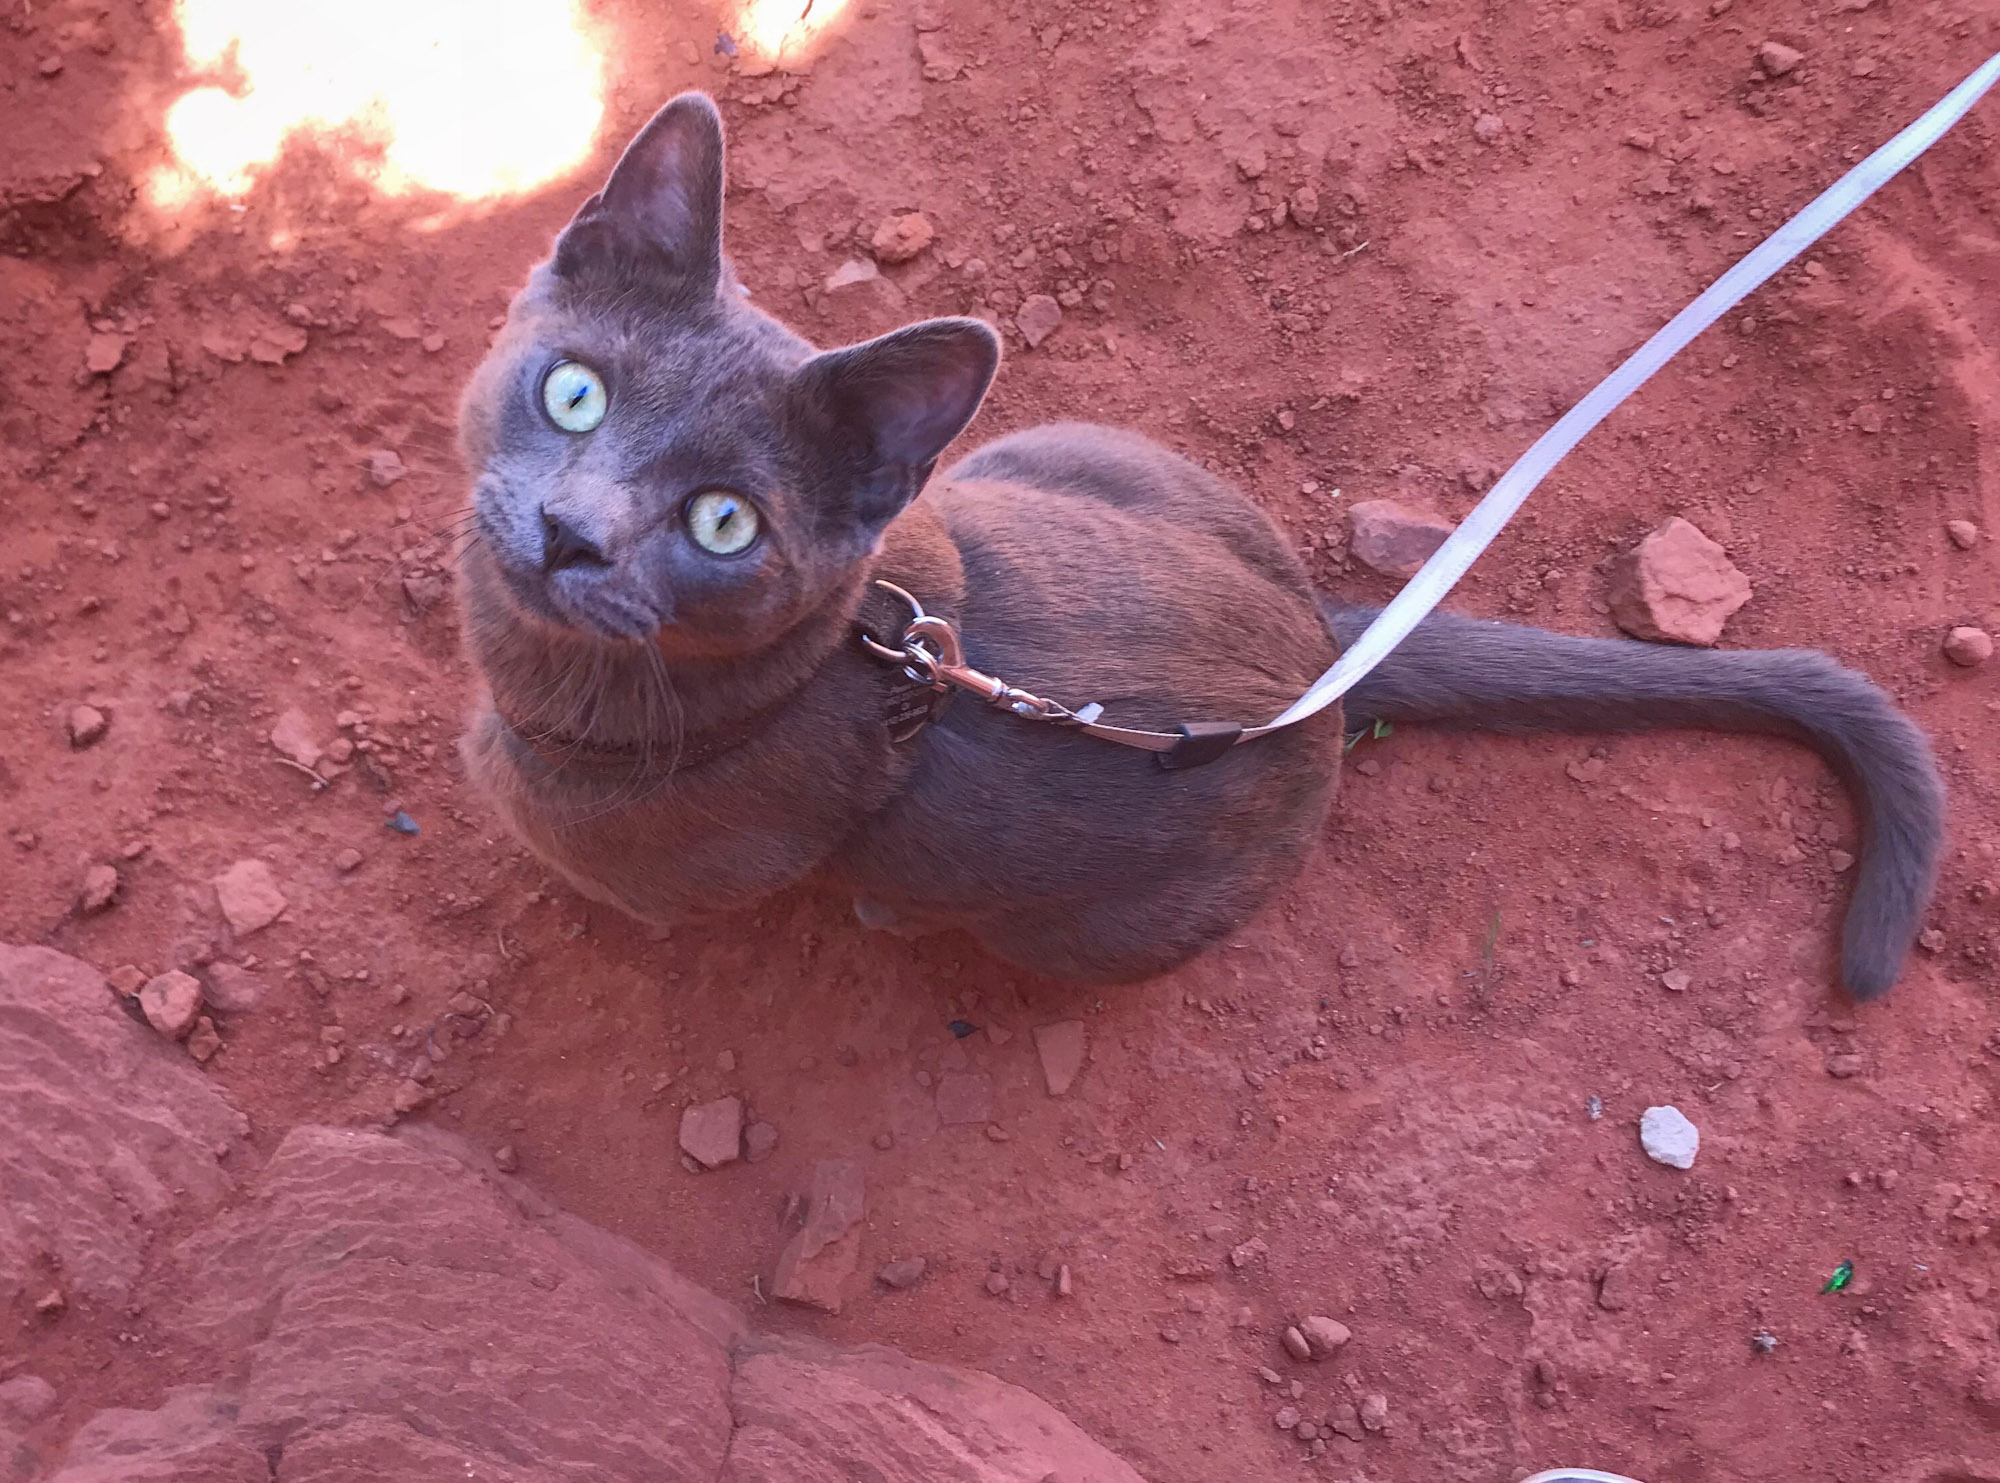 gray adventure cat stares up from red dirt